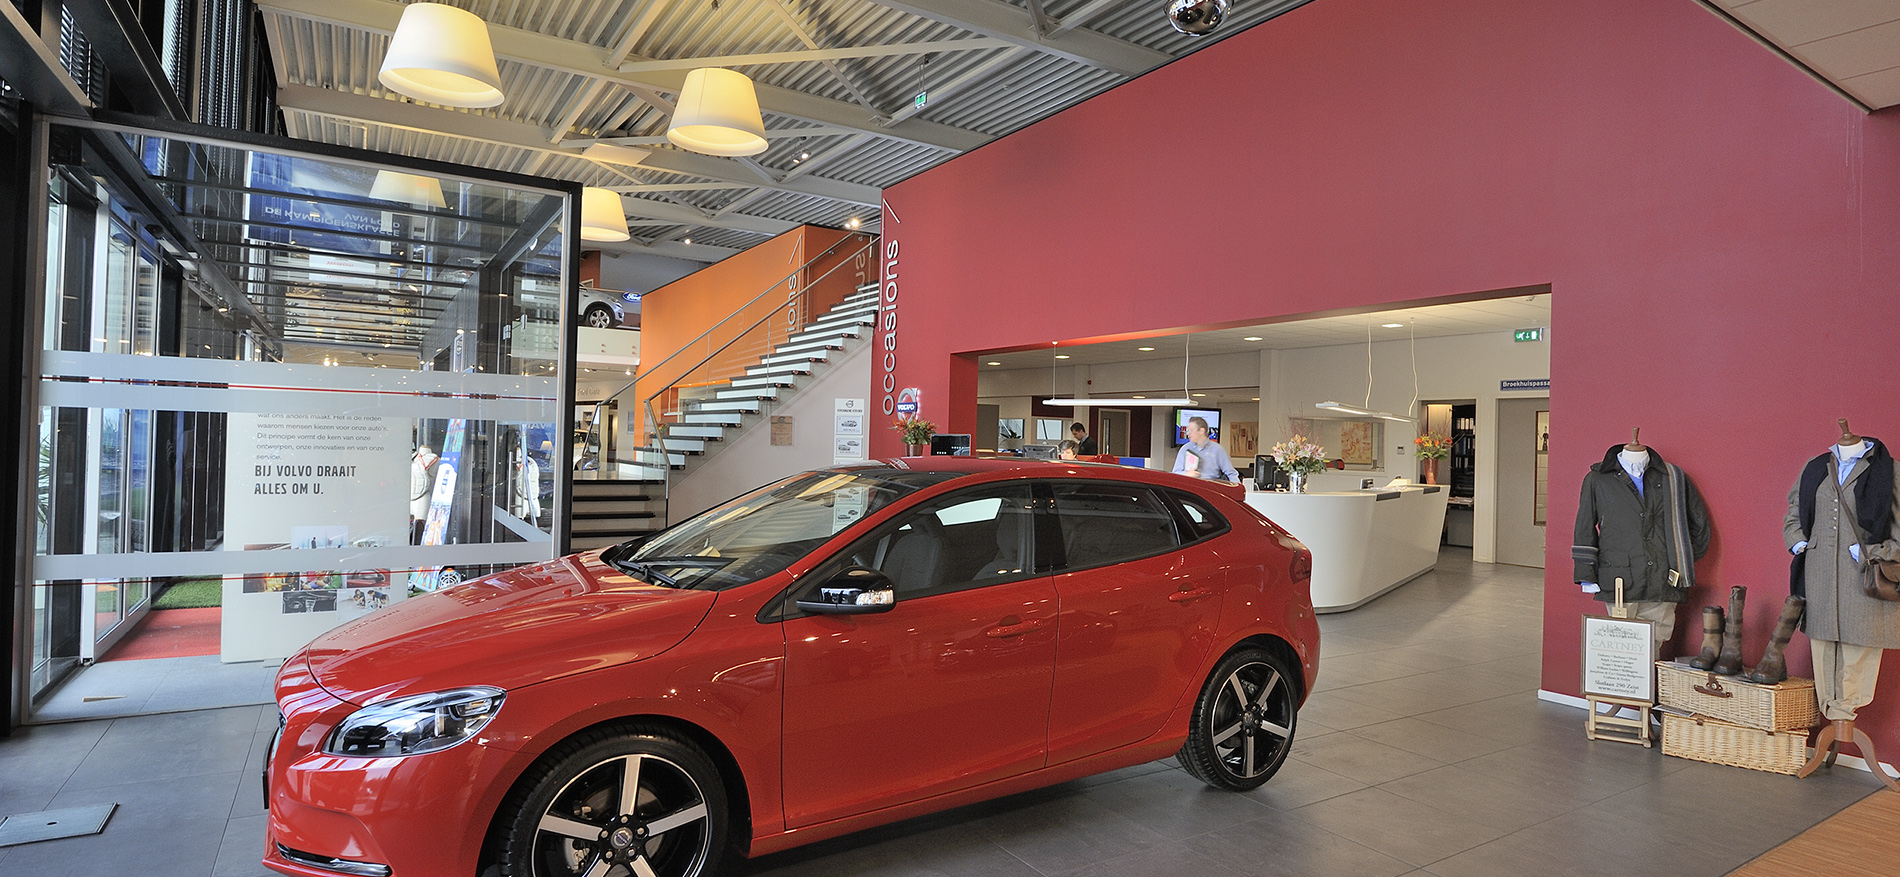 Ford broekhuis zeist showroom inrichting door wsb for Interieur bouwer